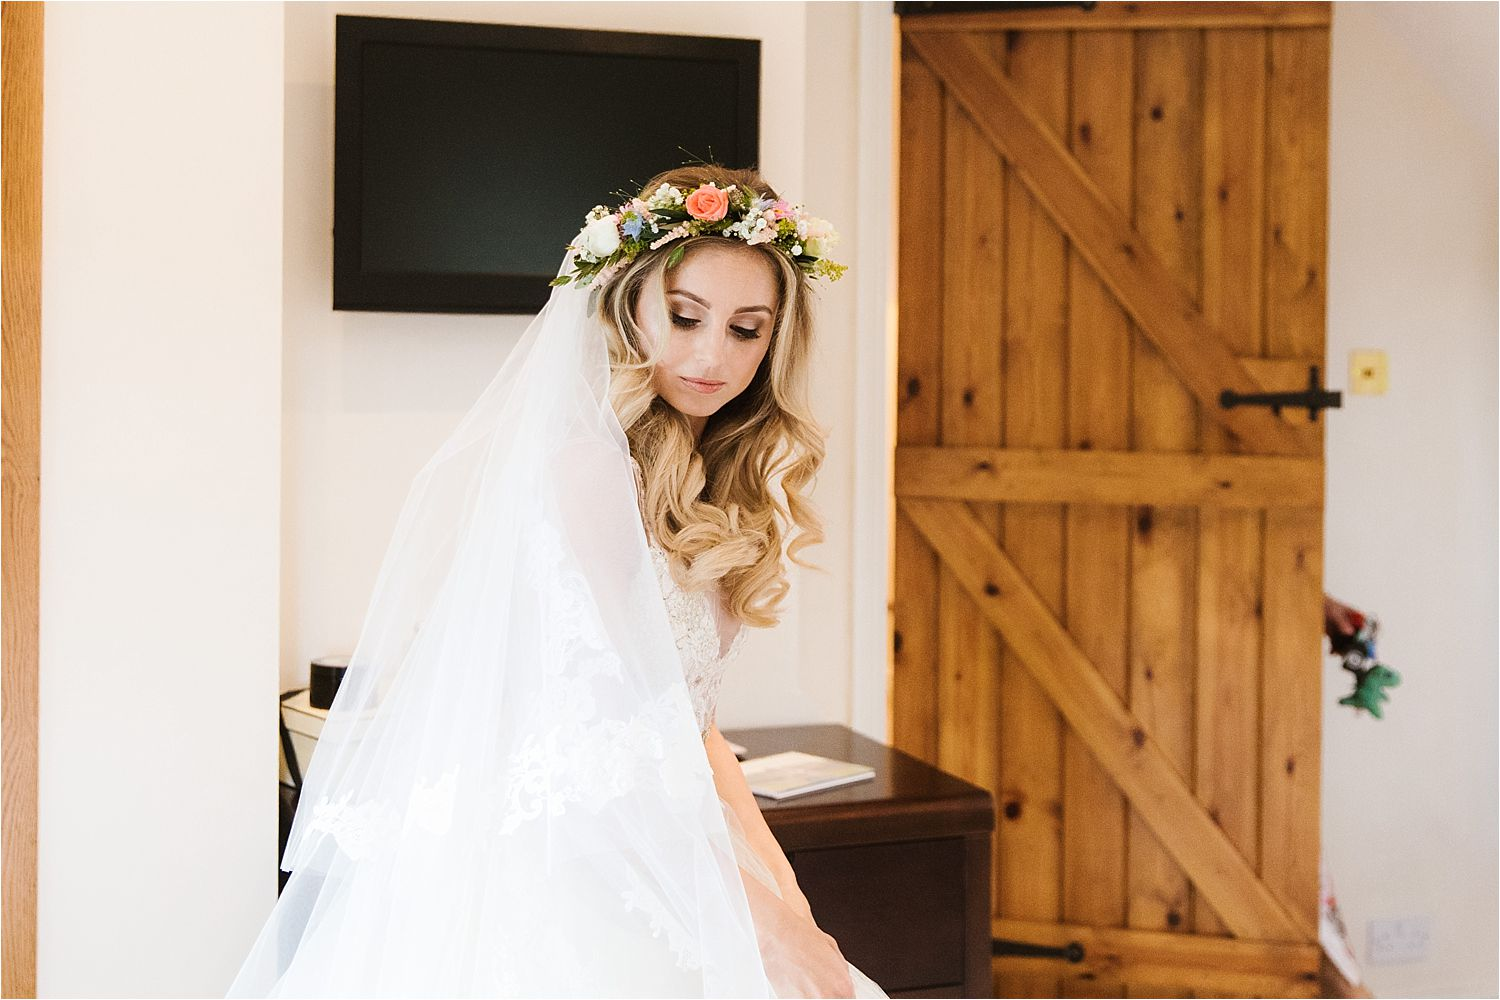 Beautiful bride - hair and make up by Lizzie Griffiths, Flowes by Green Earth Flowers